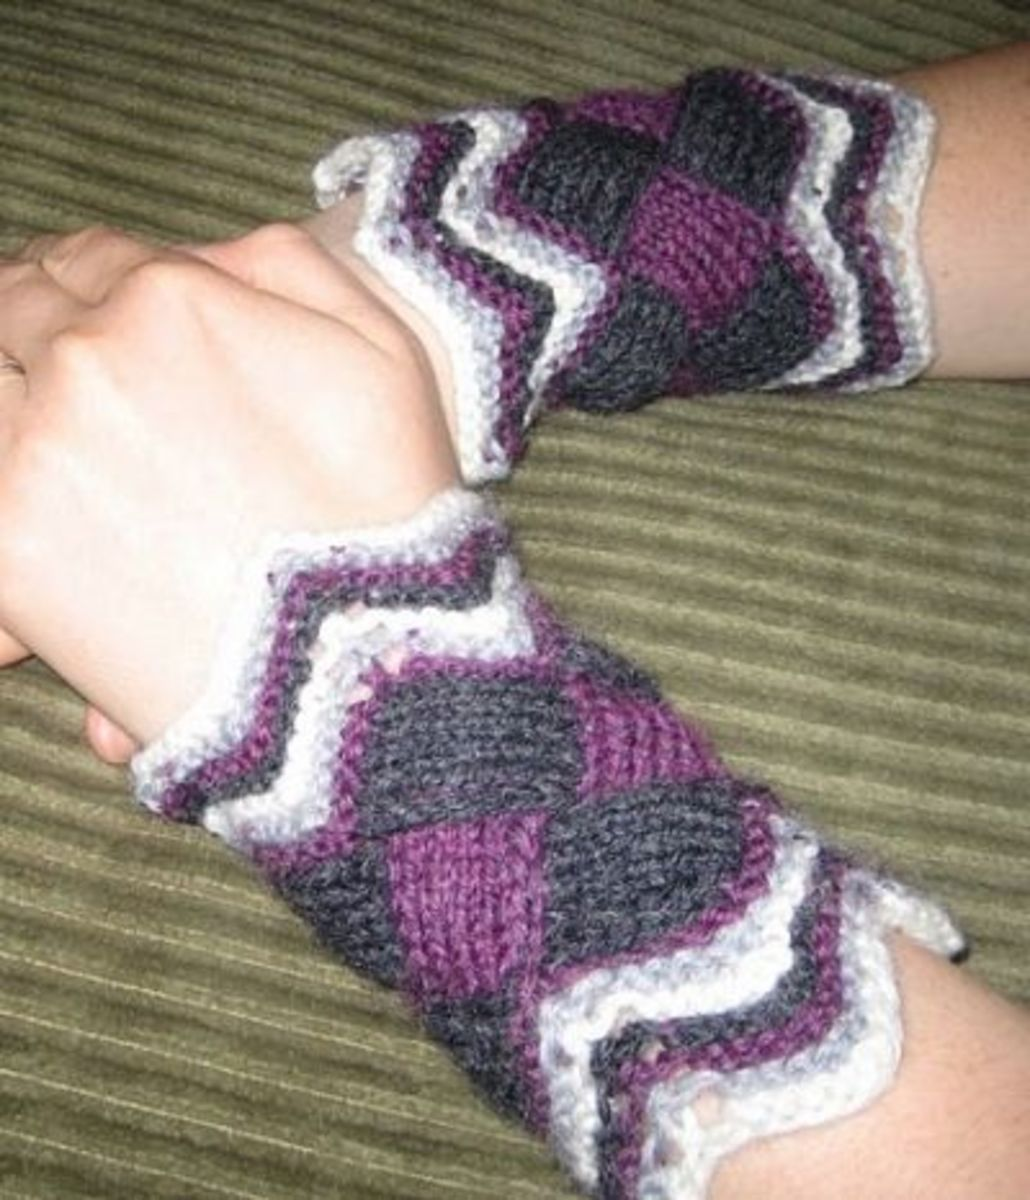 Entrelac Wristers from Norwegian Handknits (My first ever entrelac project!)